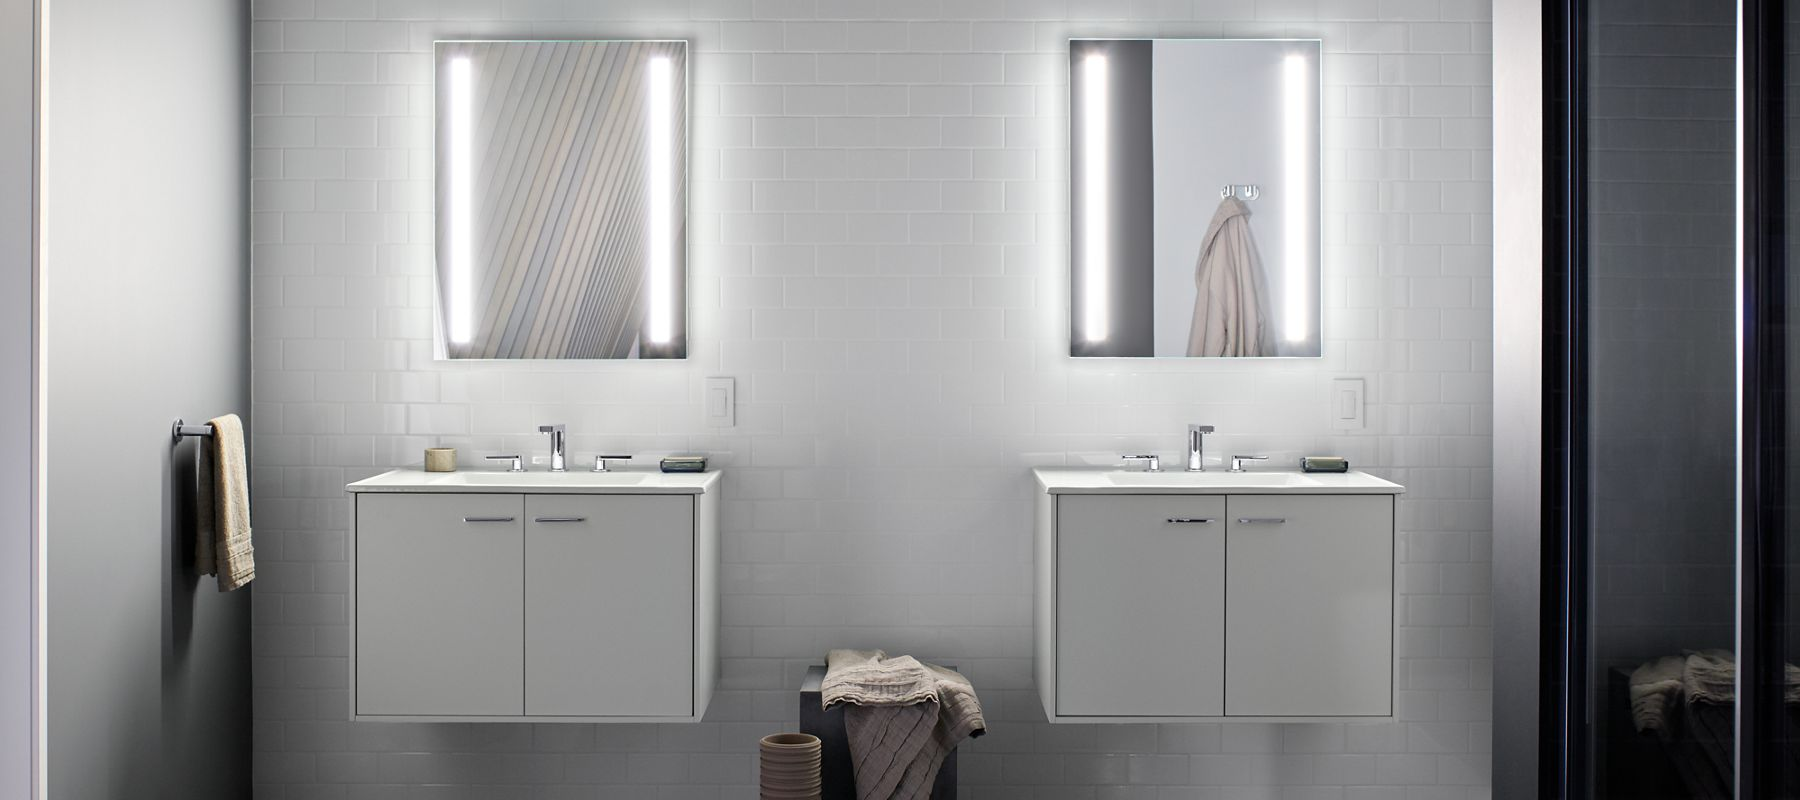 Bathroom mirrors bathroom kohler verdera lighted mirrors medicine cabinets aloadofball